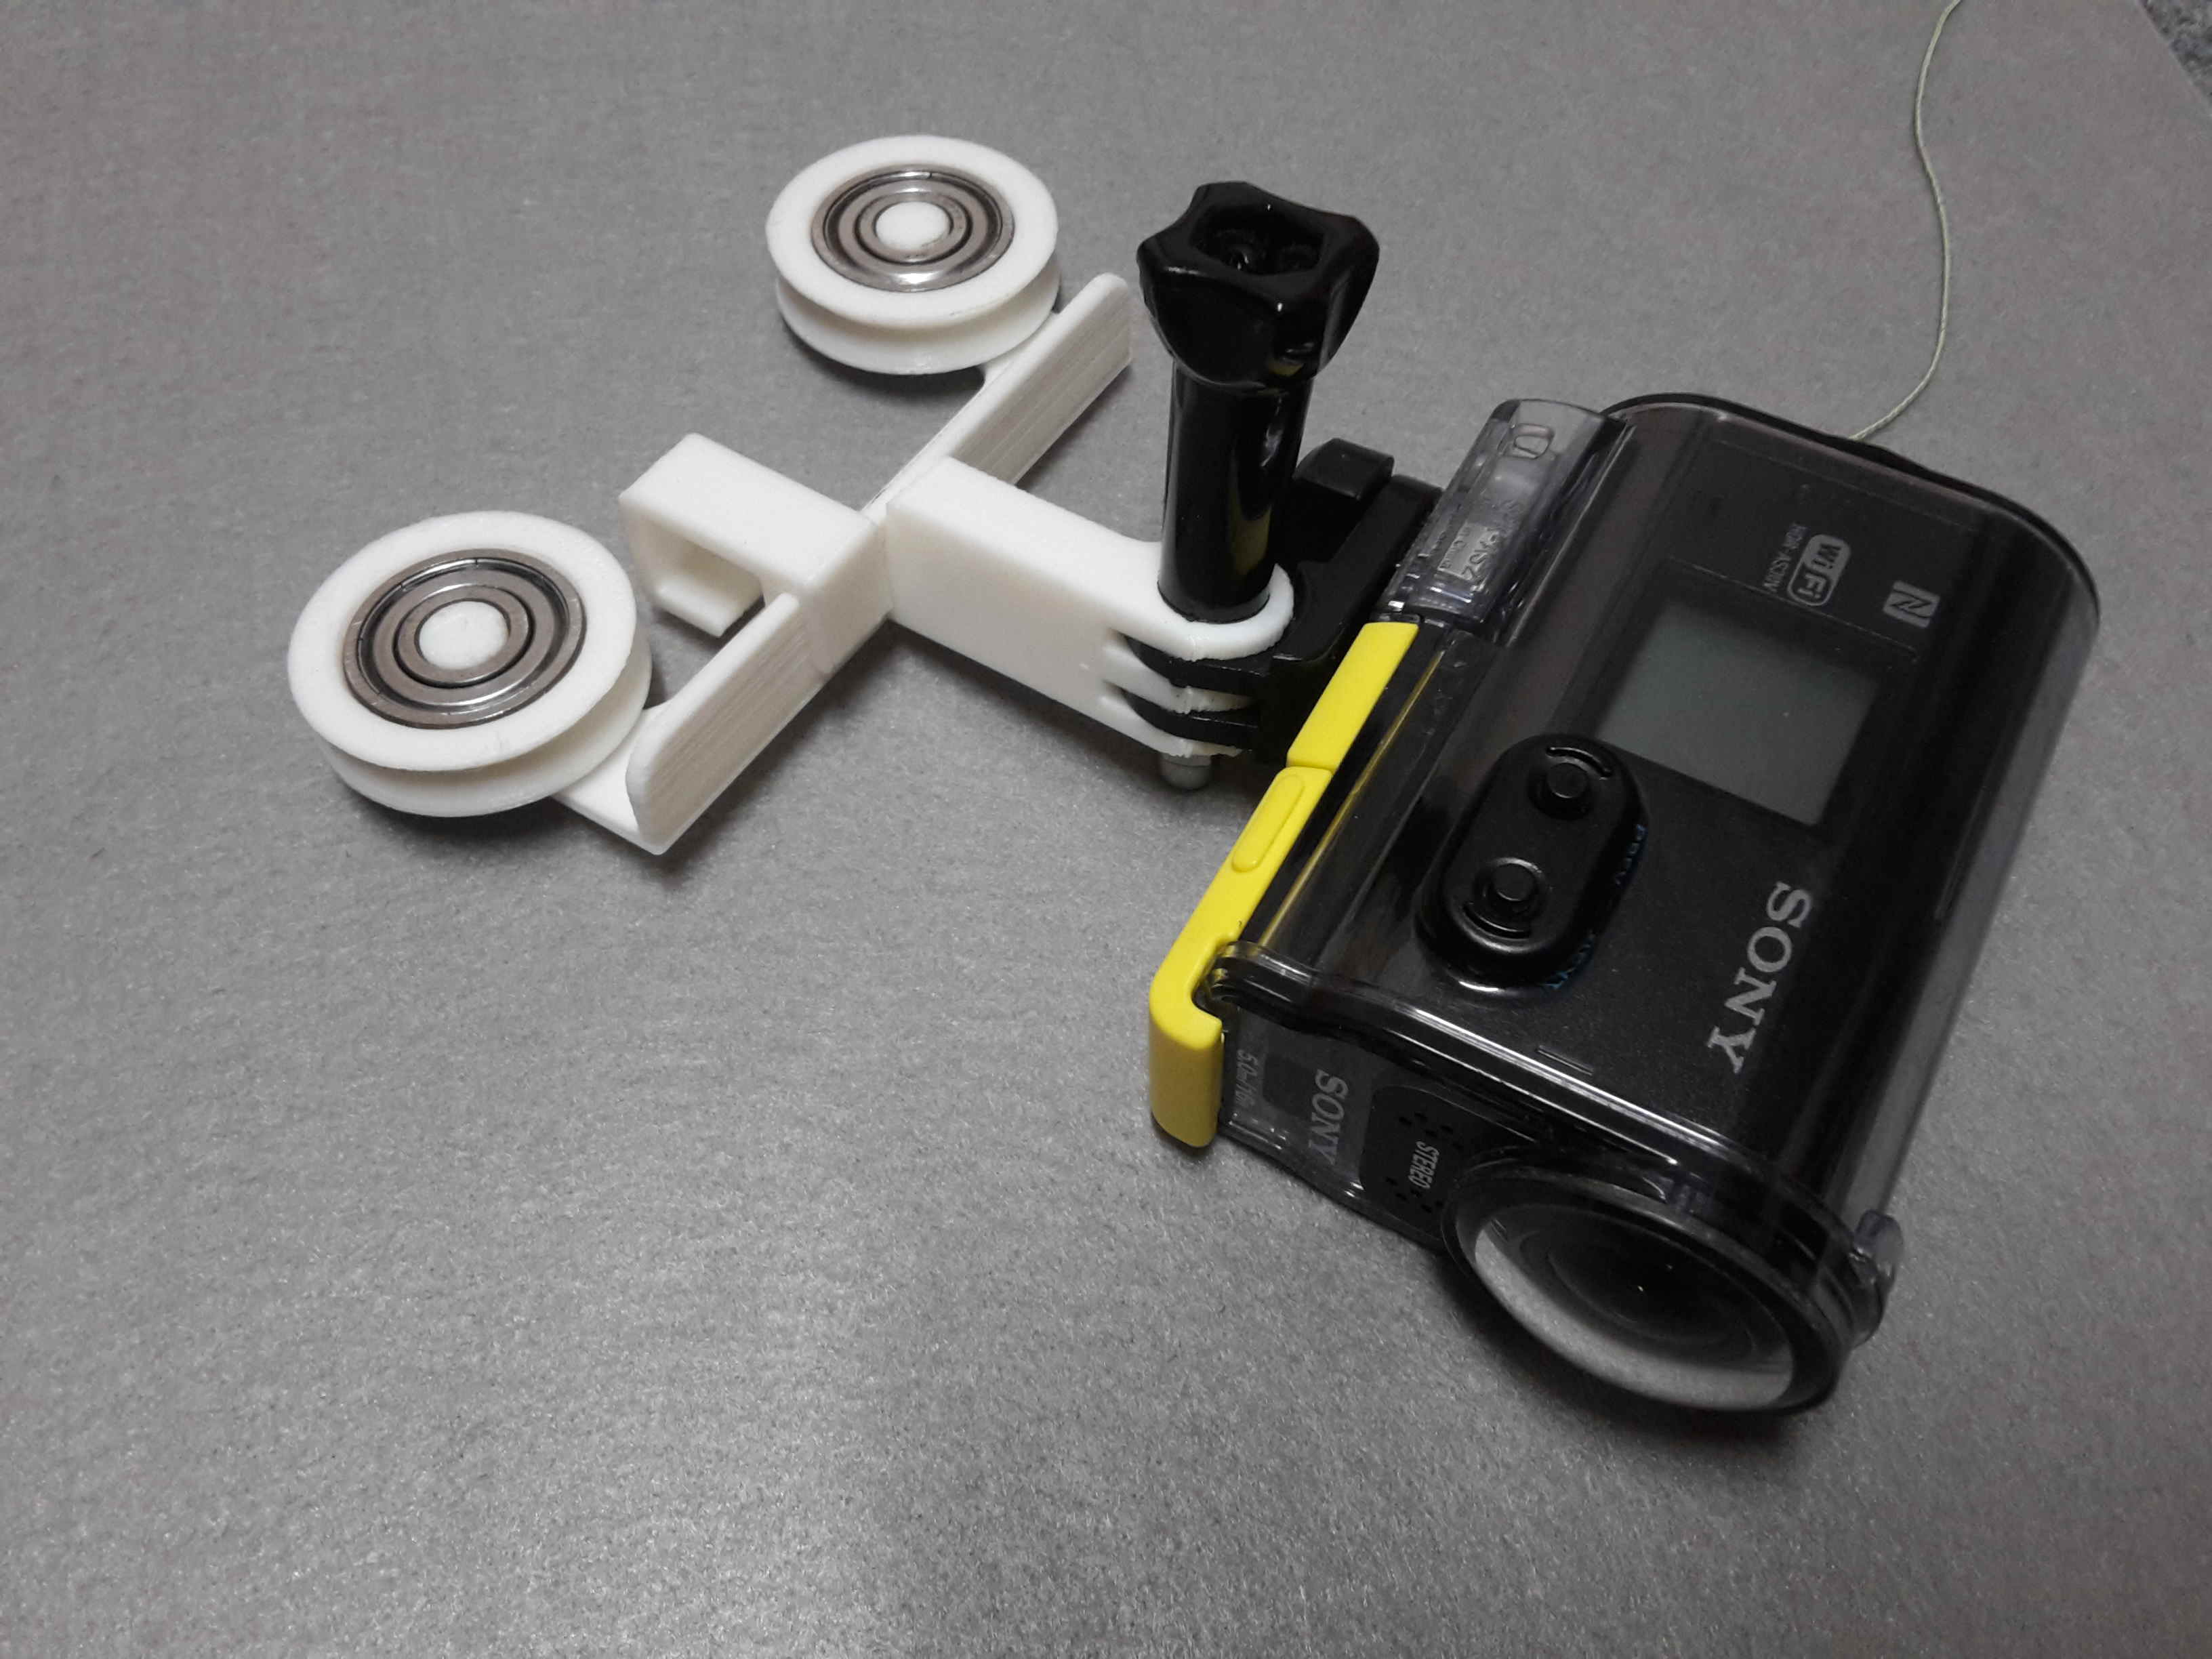 Action cable cam by lassealm May 26 2015 View Original